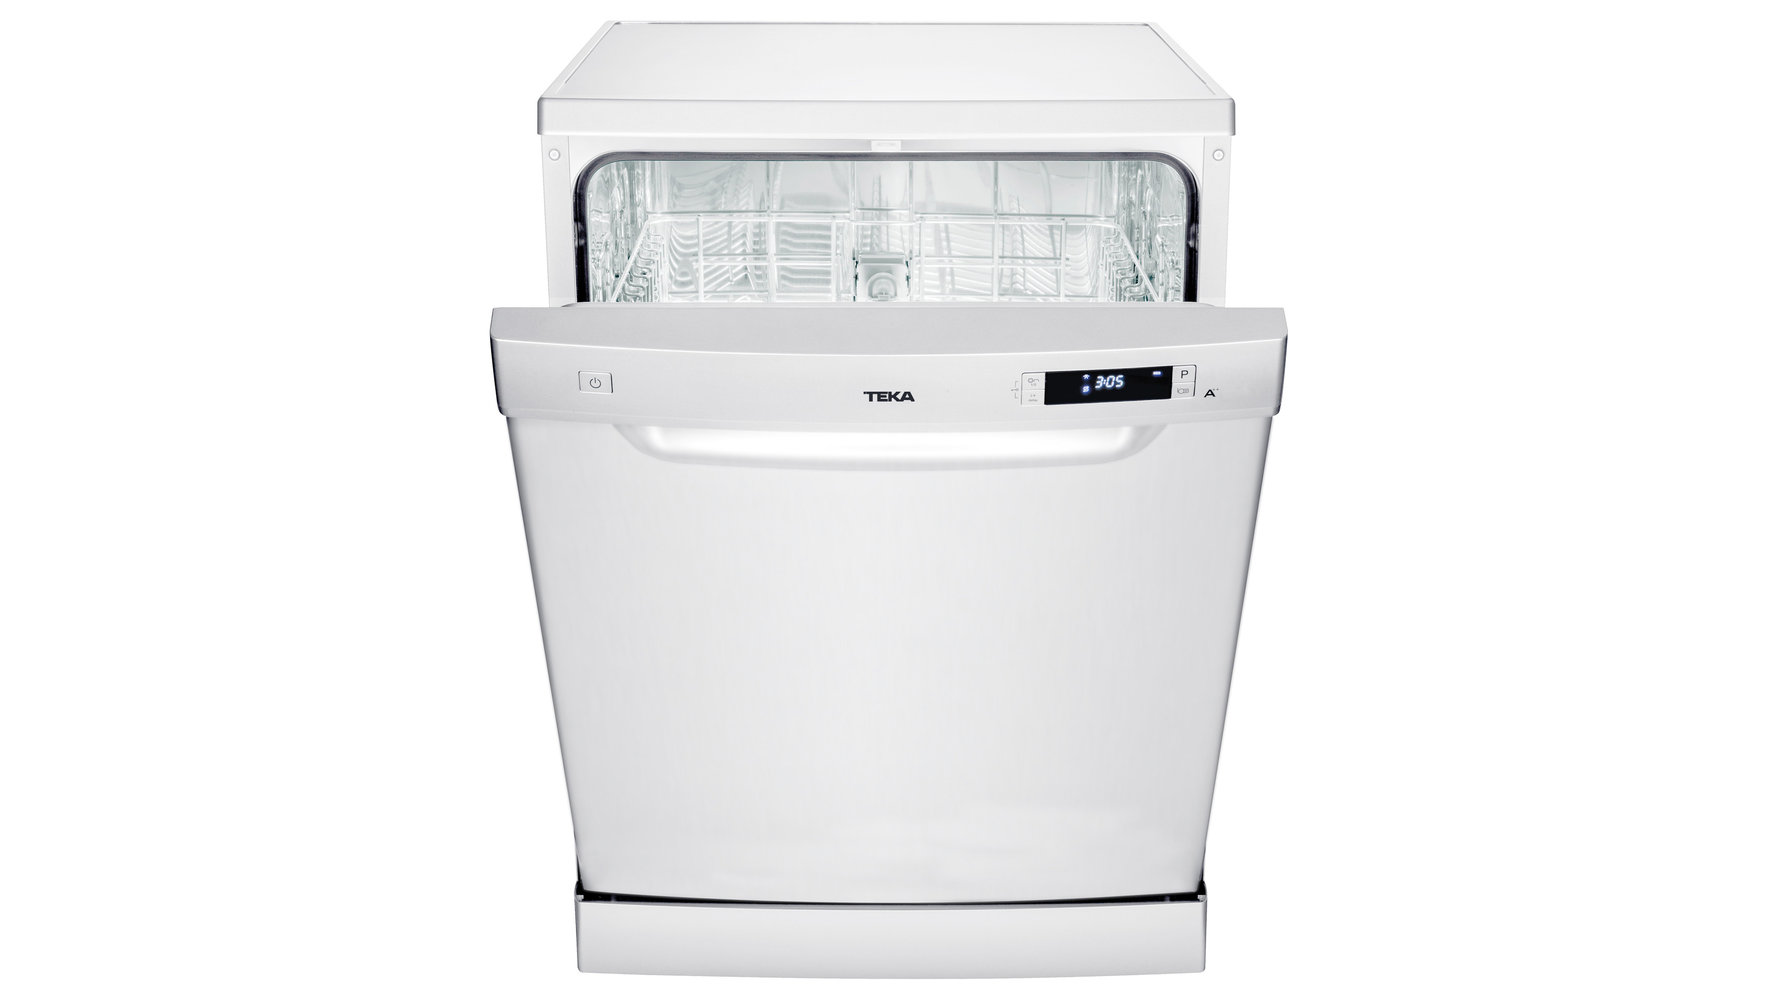 Free-standing A++ dishwasher for 12 place settings and 6 washing programs